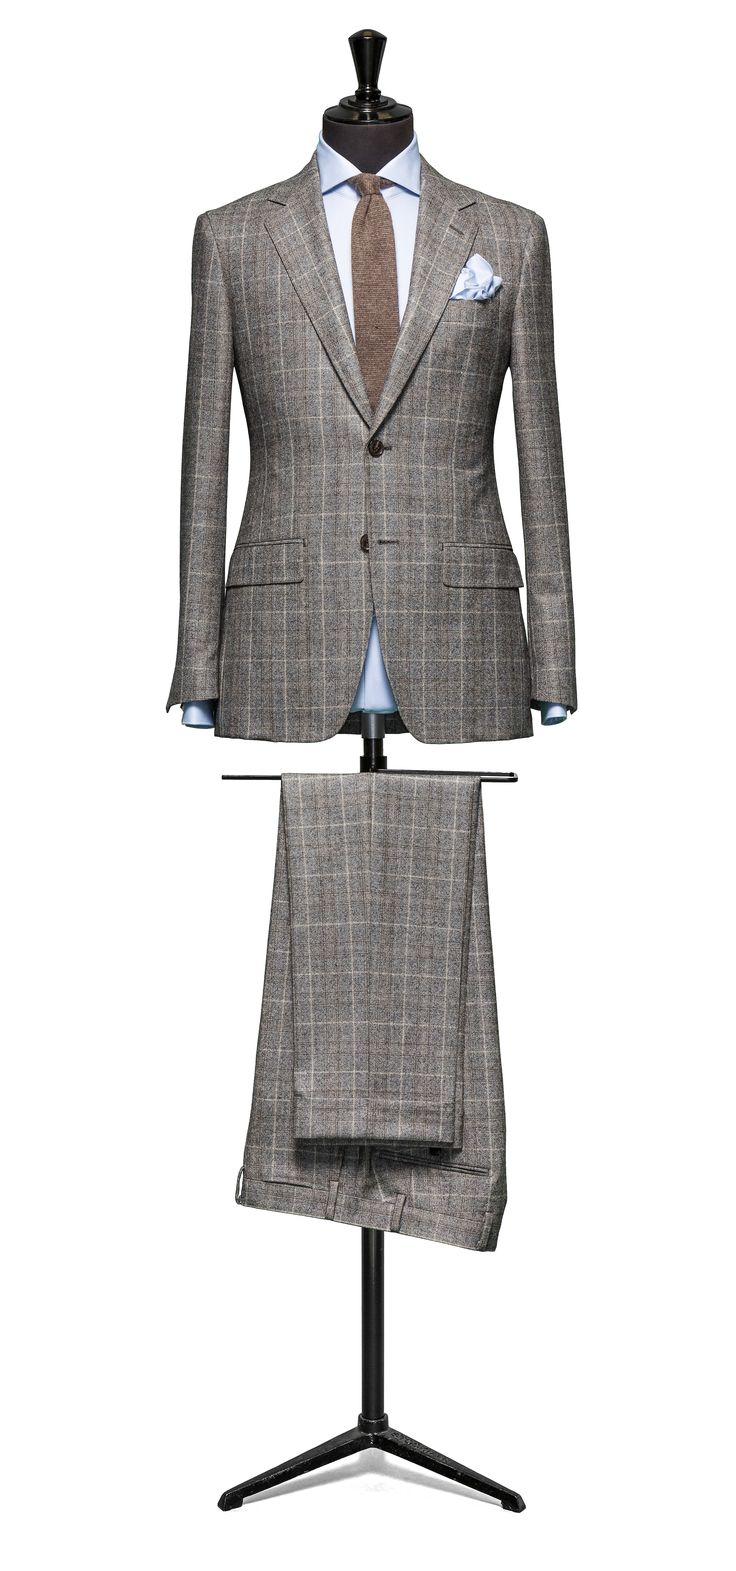 Grey-brown suit Glencheck beige windowpane S120 http://www.tailormadelondon.com/shop/tailored-suit-fabric-4303-check-grey/